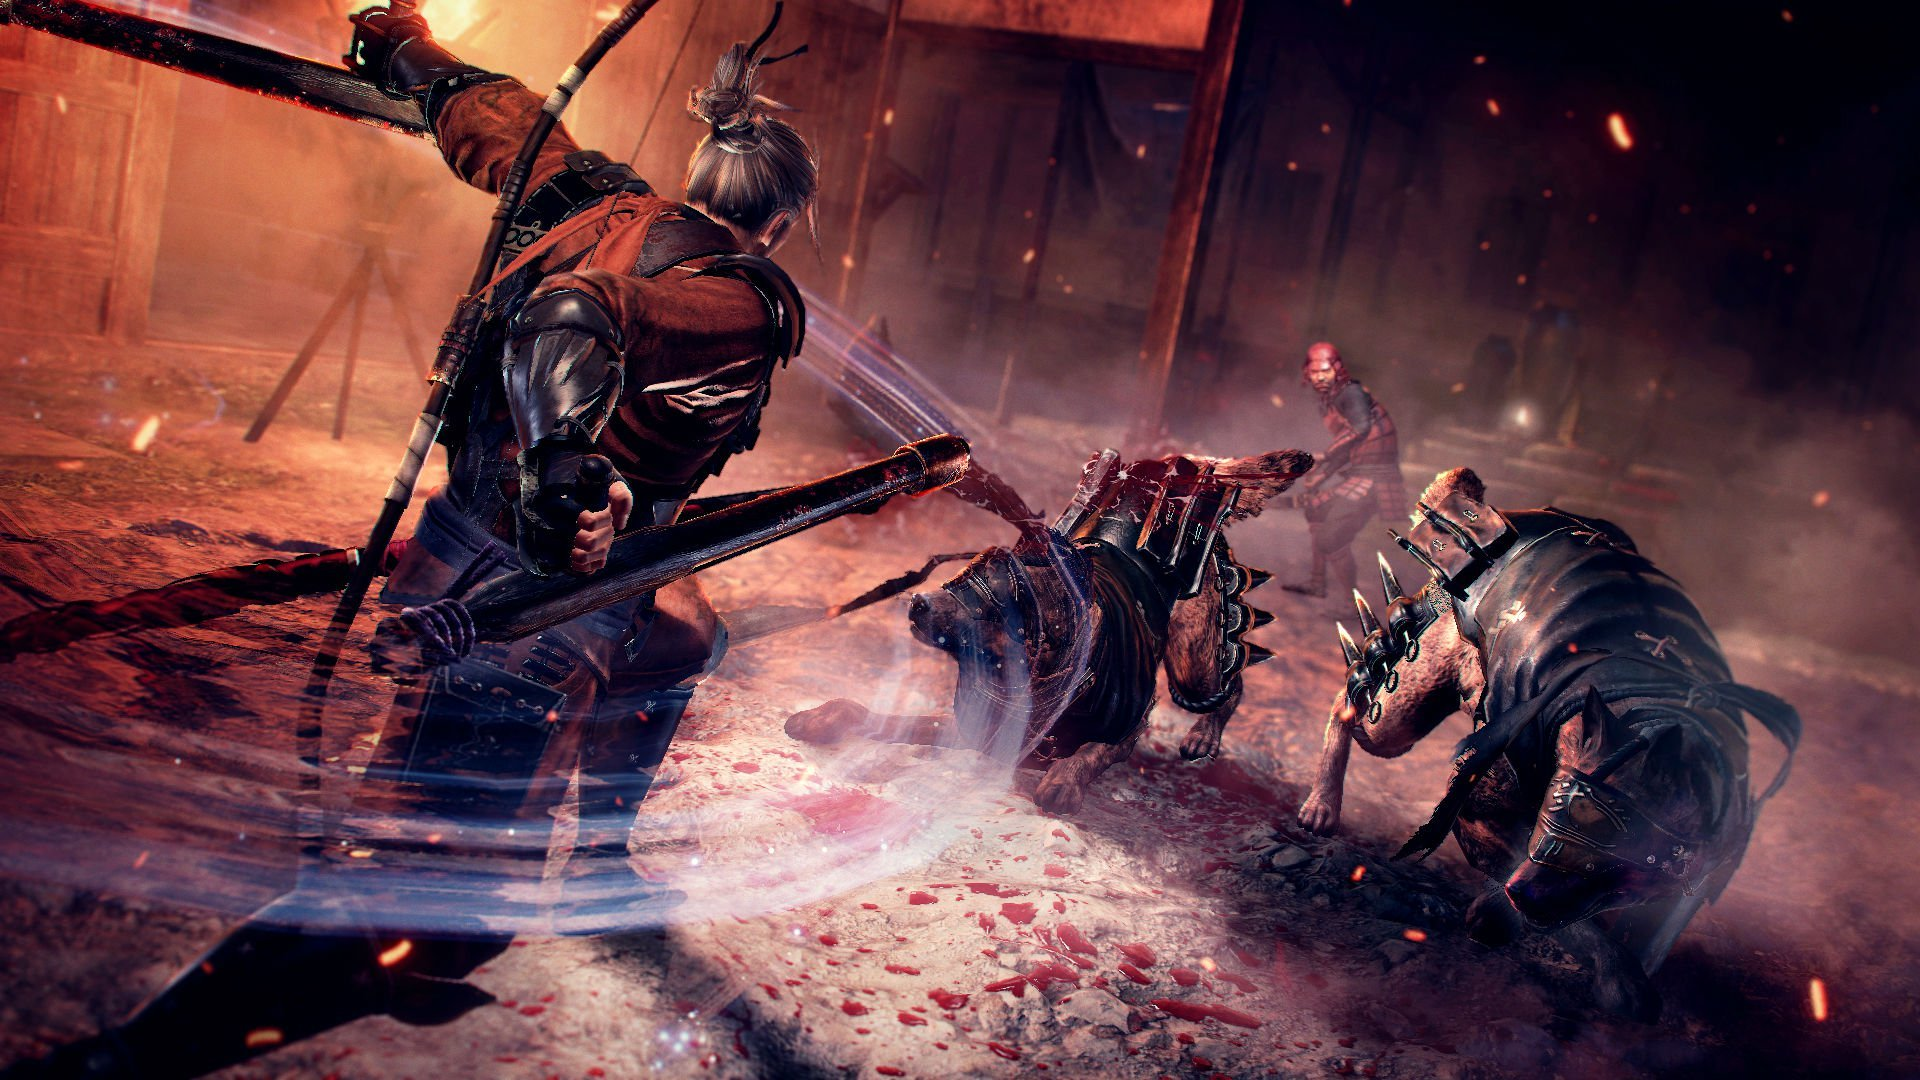 Here's a late look at the trailer for Nioh's Defiant Honor DLC screenshot